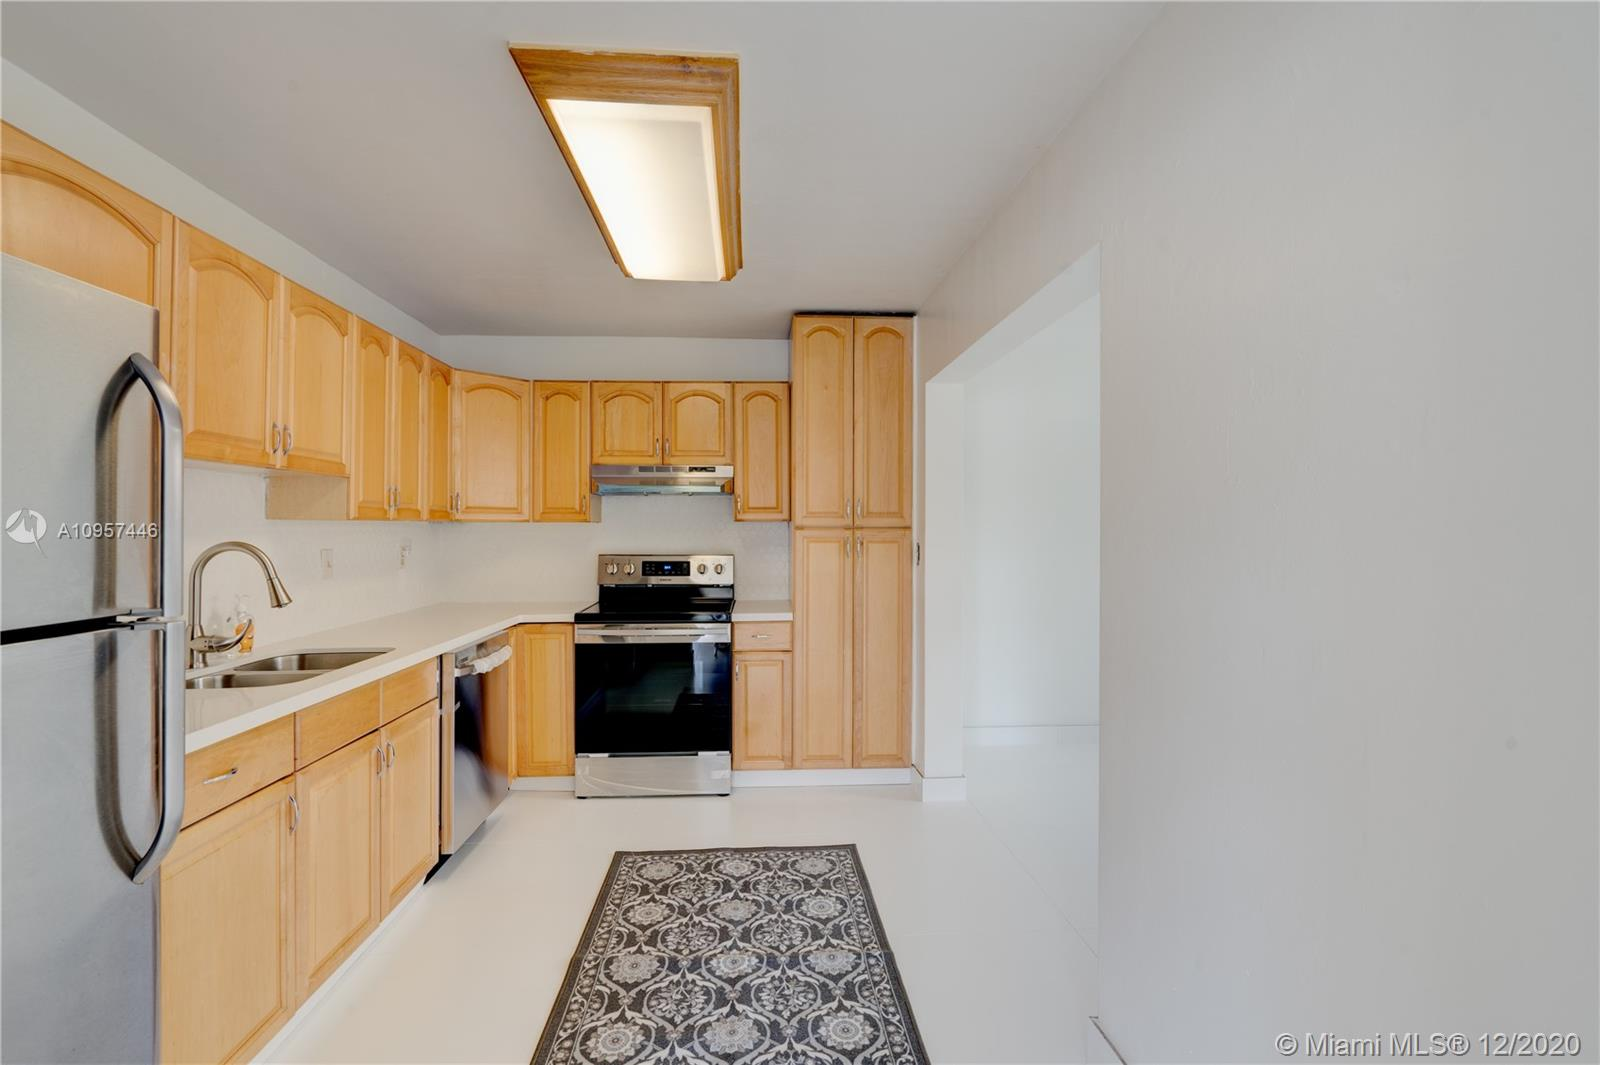 MINUTES TO FORT LAUDERDALE BEACH AND DOWNTOWN AREA. THIS IS THE PERFECT N.E LOCATION FOR AN AFFORDABLE SINGLE FAMILY HOME. FRESHLY PAINTED 3 BEDROOM AND 2 BATH ONE STORY BRIGHT AND AIRY HOME. BRAND NEW WHITE KITCHEN QUARTZ COUNTERTOPS, BRAND NEW WHITE TRENDY MOSAIQUE BACKSPLASH, BRAND NEW WHITE CERAMIC FLOORINGS AND BRAND NEW G.E STAINLESS STEEL CERAMIC TOP STOVE AND STAINLESS STEEL APPLIANCES. NEWER BATROOMS. MINUTES TO THE WARM WATERS AND SANDY BEACHES OF FORT LAUDERDALE. RESTAURANTS, SHOPS, MAJOR HIGHWAYS. LARGE FENCED IN BACKYARD WITH MATURE TREES. FANTASTIC FOR A GROWING FAMILY, COUPLES, AIRBNB AND IT IS THE MOST PERFECT RENTAL! INVESTORS: NO HOA'S TO DEAL WITH, RENT INMEDIATLY AFTER BUYING. ELEMENTARY SCHOOL AND HOUSE OF WORSHIP WITHIN WALKING DISTANCE. DON'T MISS THIS GREAT HOME!